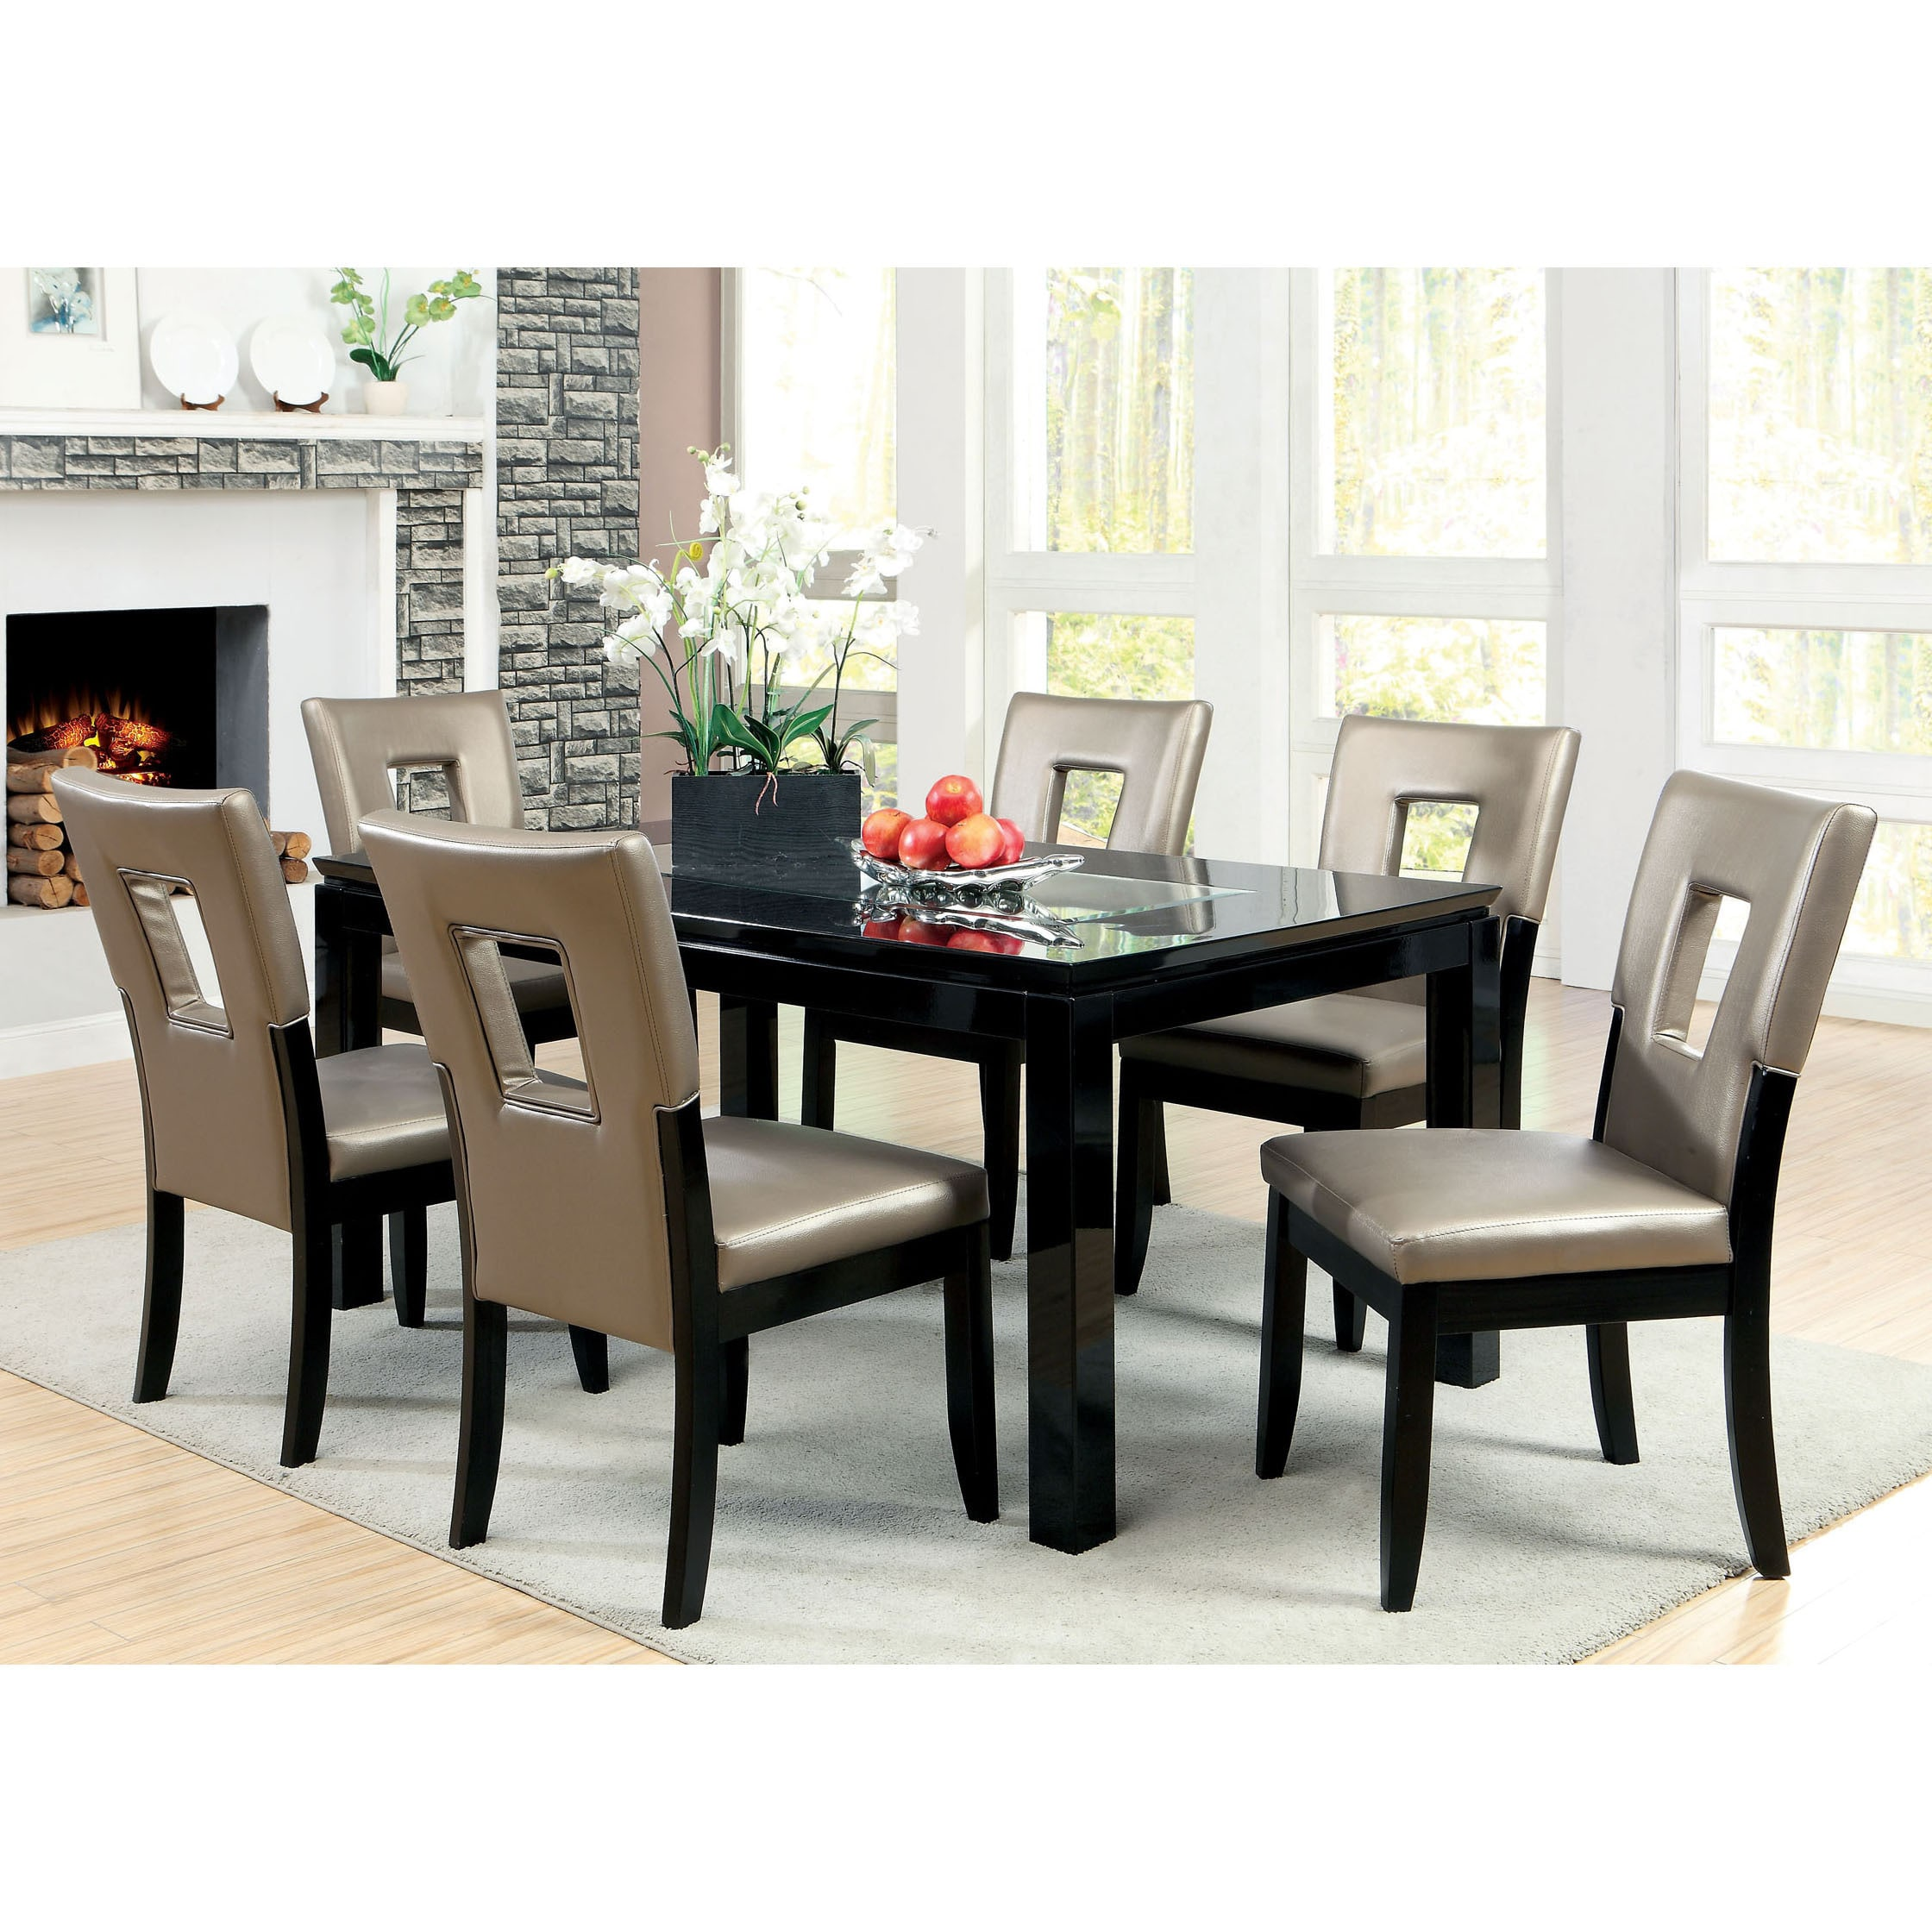 Furniture Of America Evantel 7 Piece Mirror Dining Table Set Free Shipping On Orders Over 45 9148581